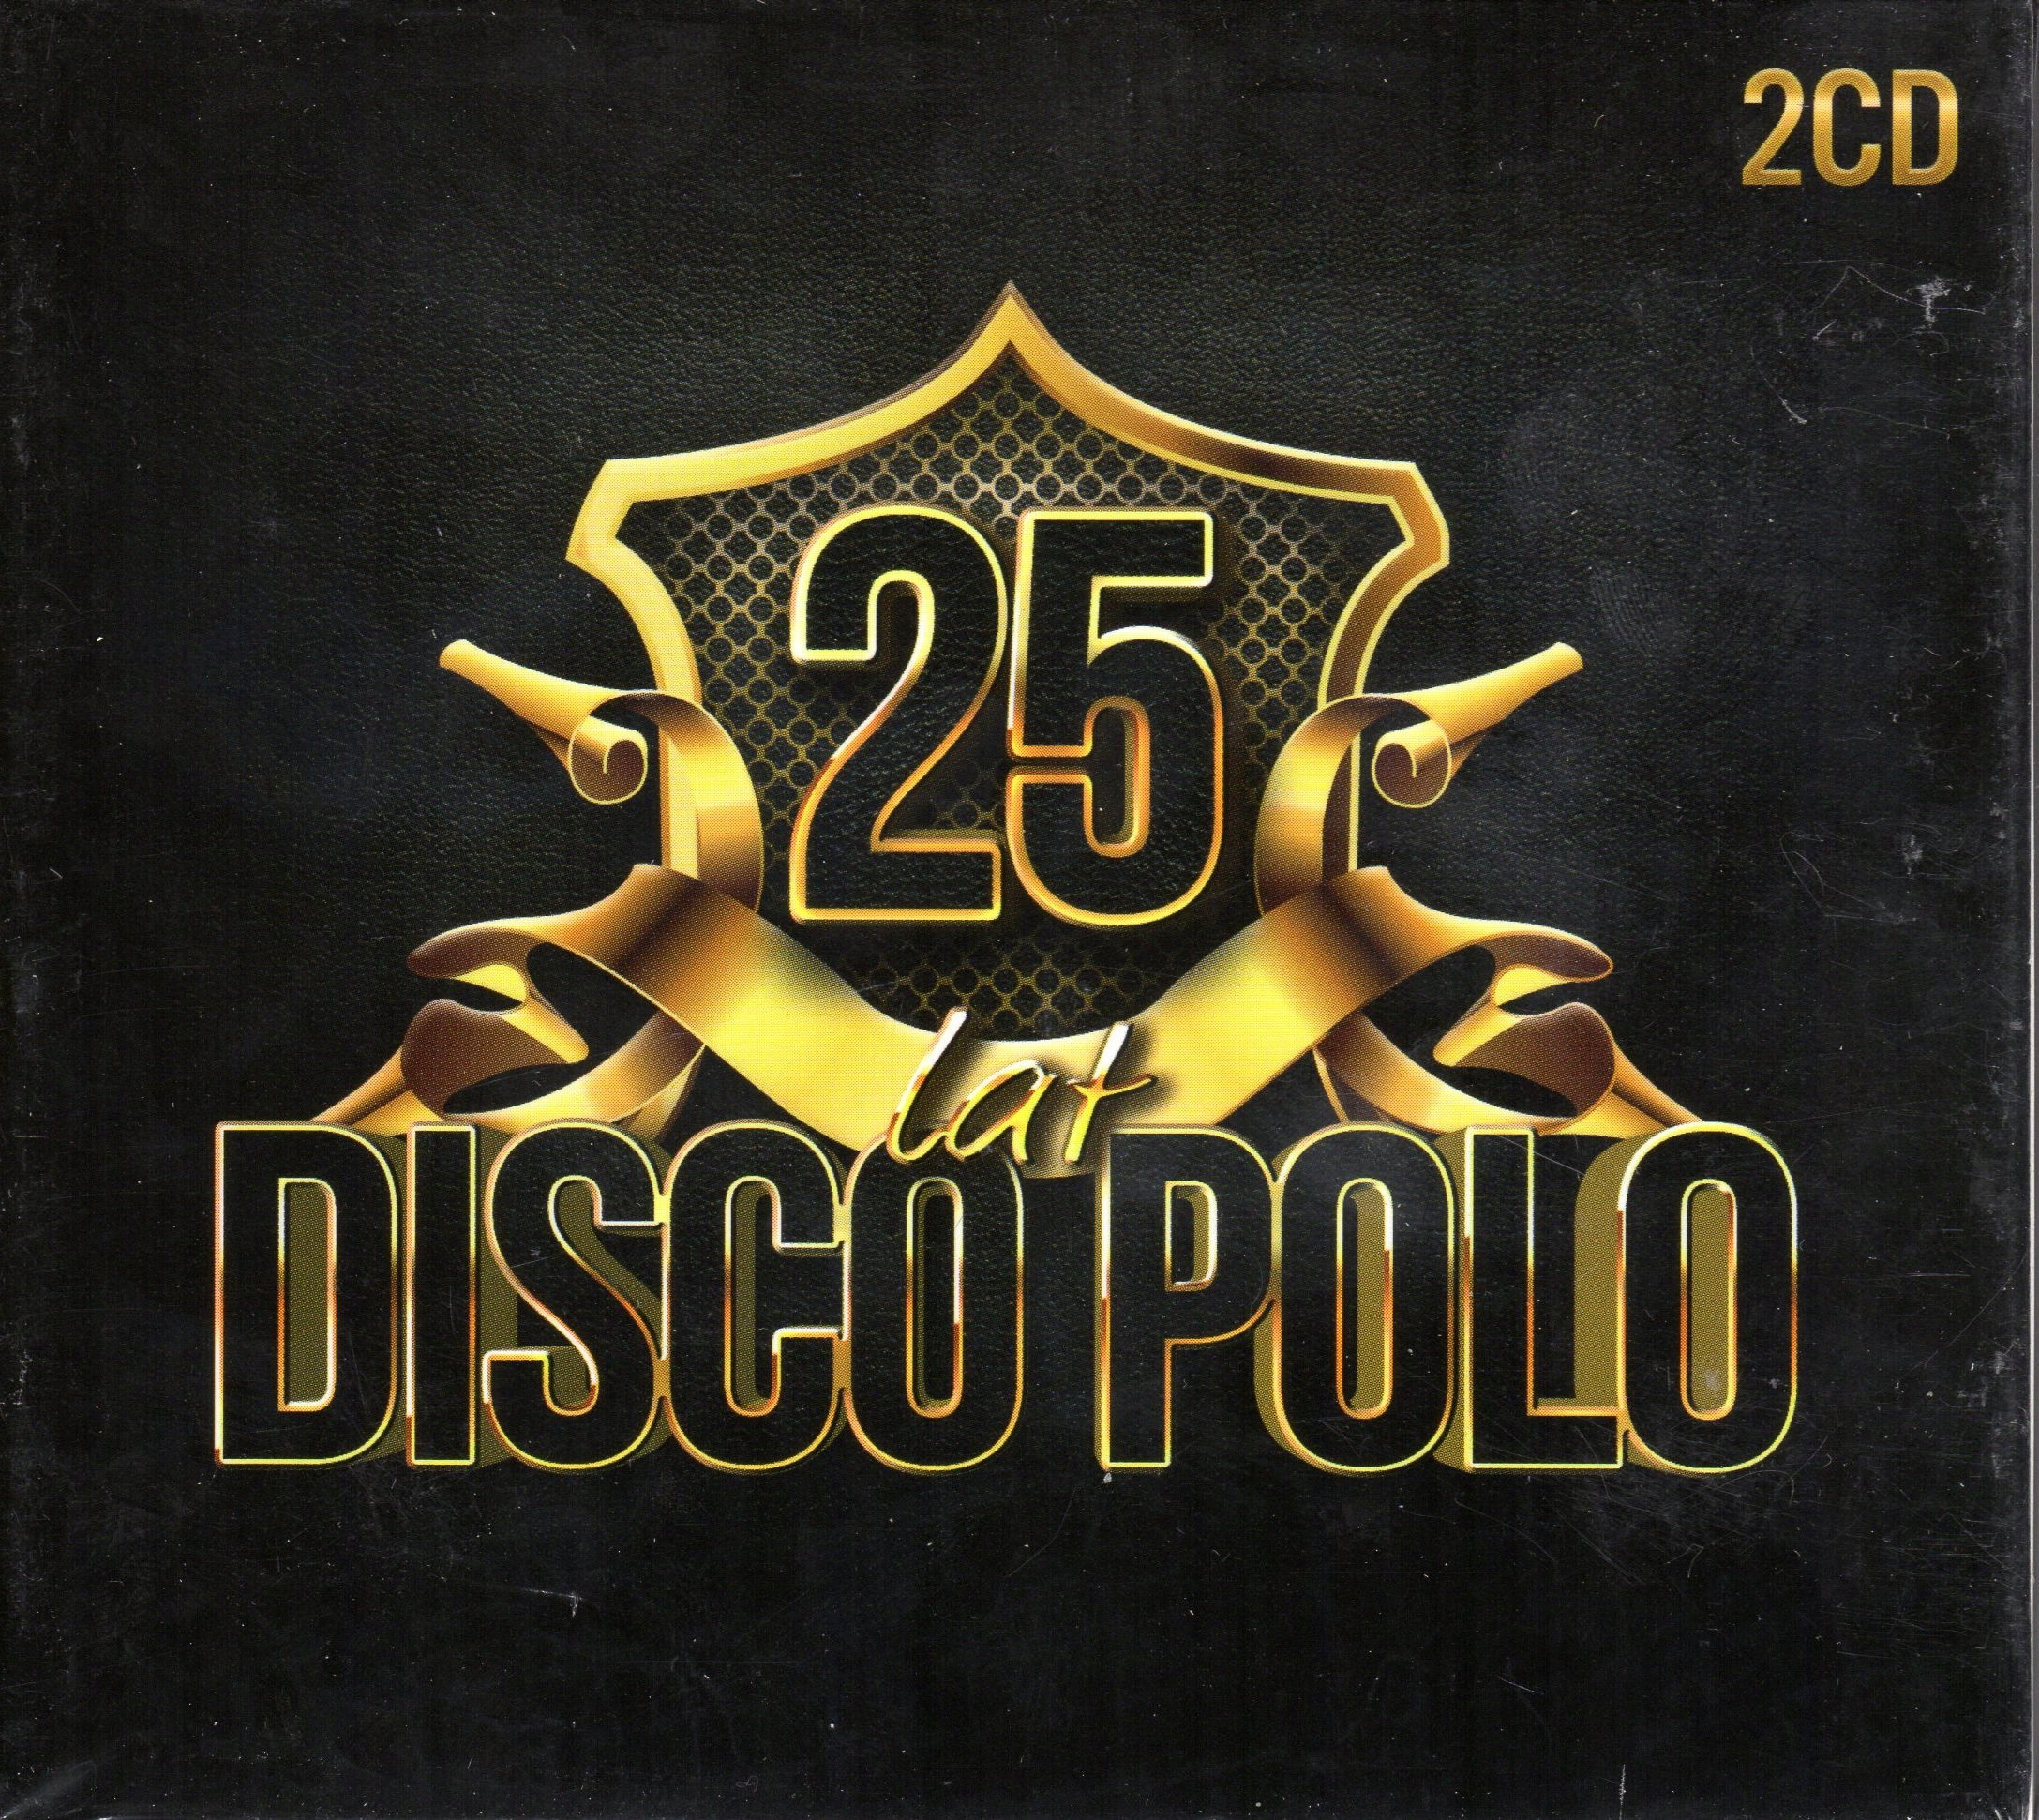 25 LAT DISCO POLO 1 & 2 4 CD